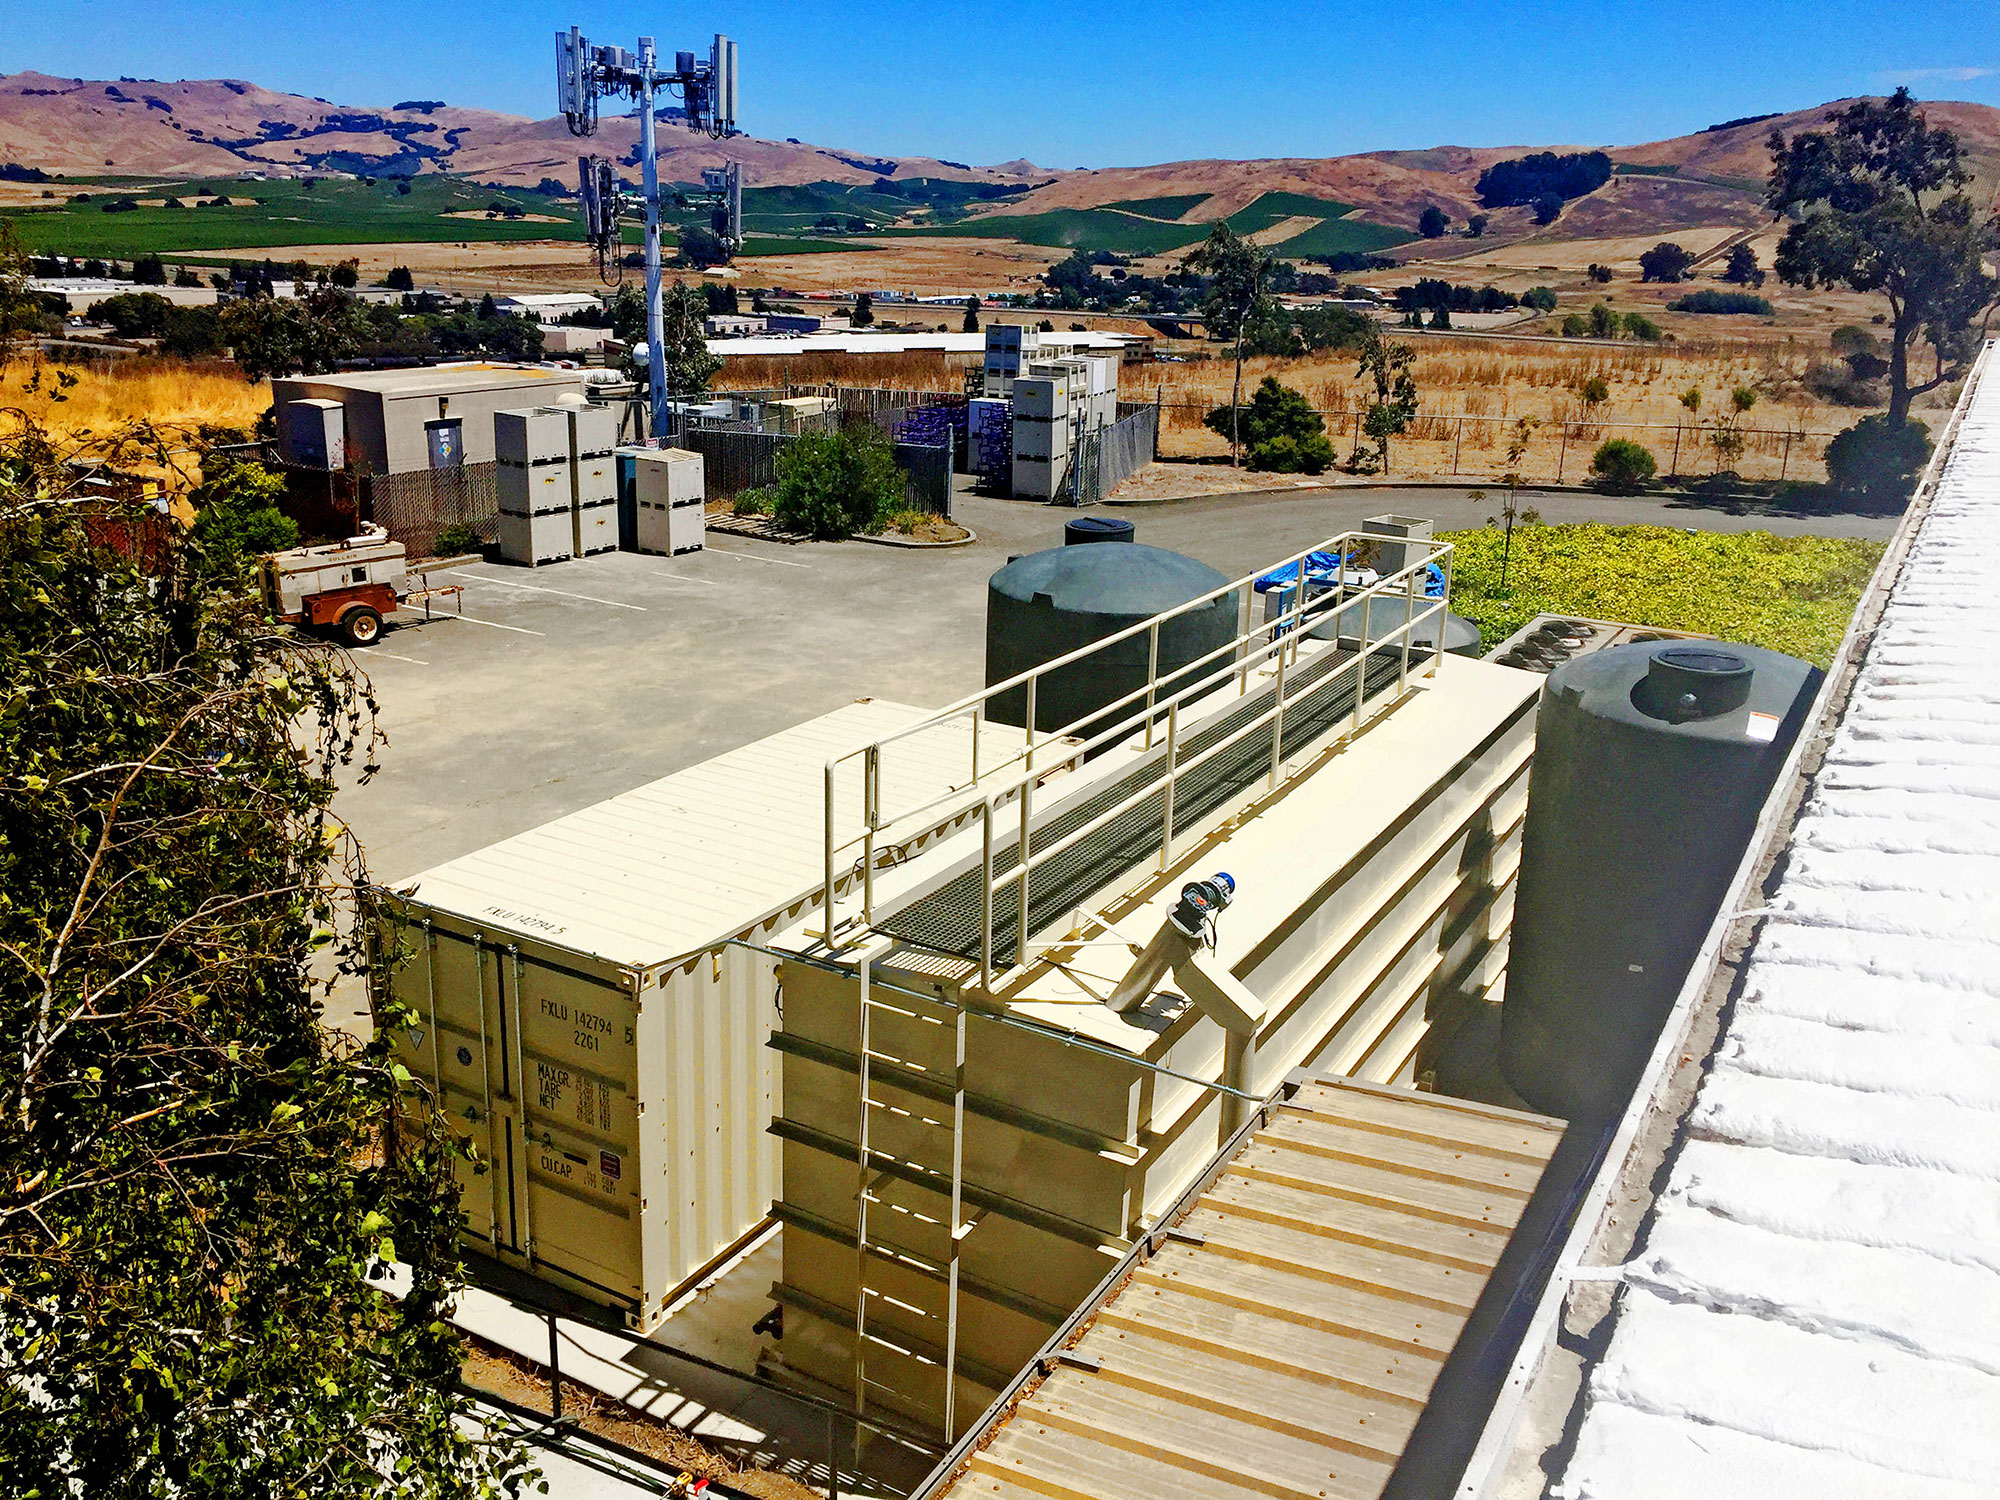 Application: MBR  Location: USA  Description: Treatment of winery wastewater in California